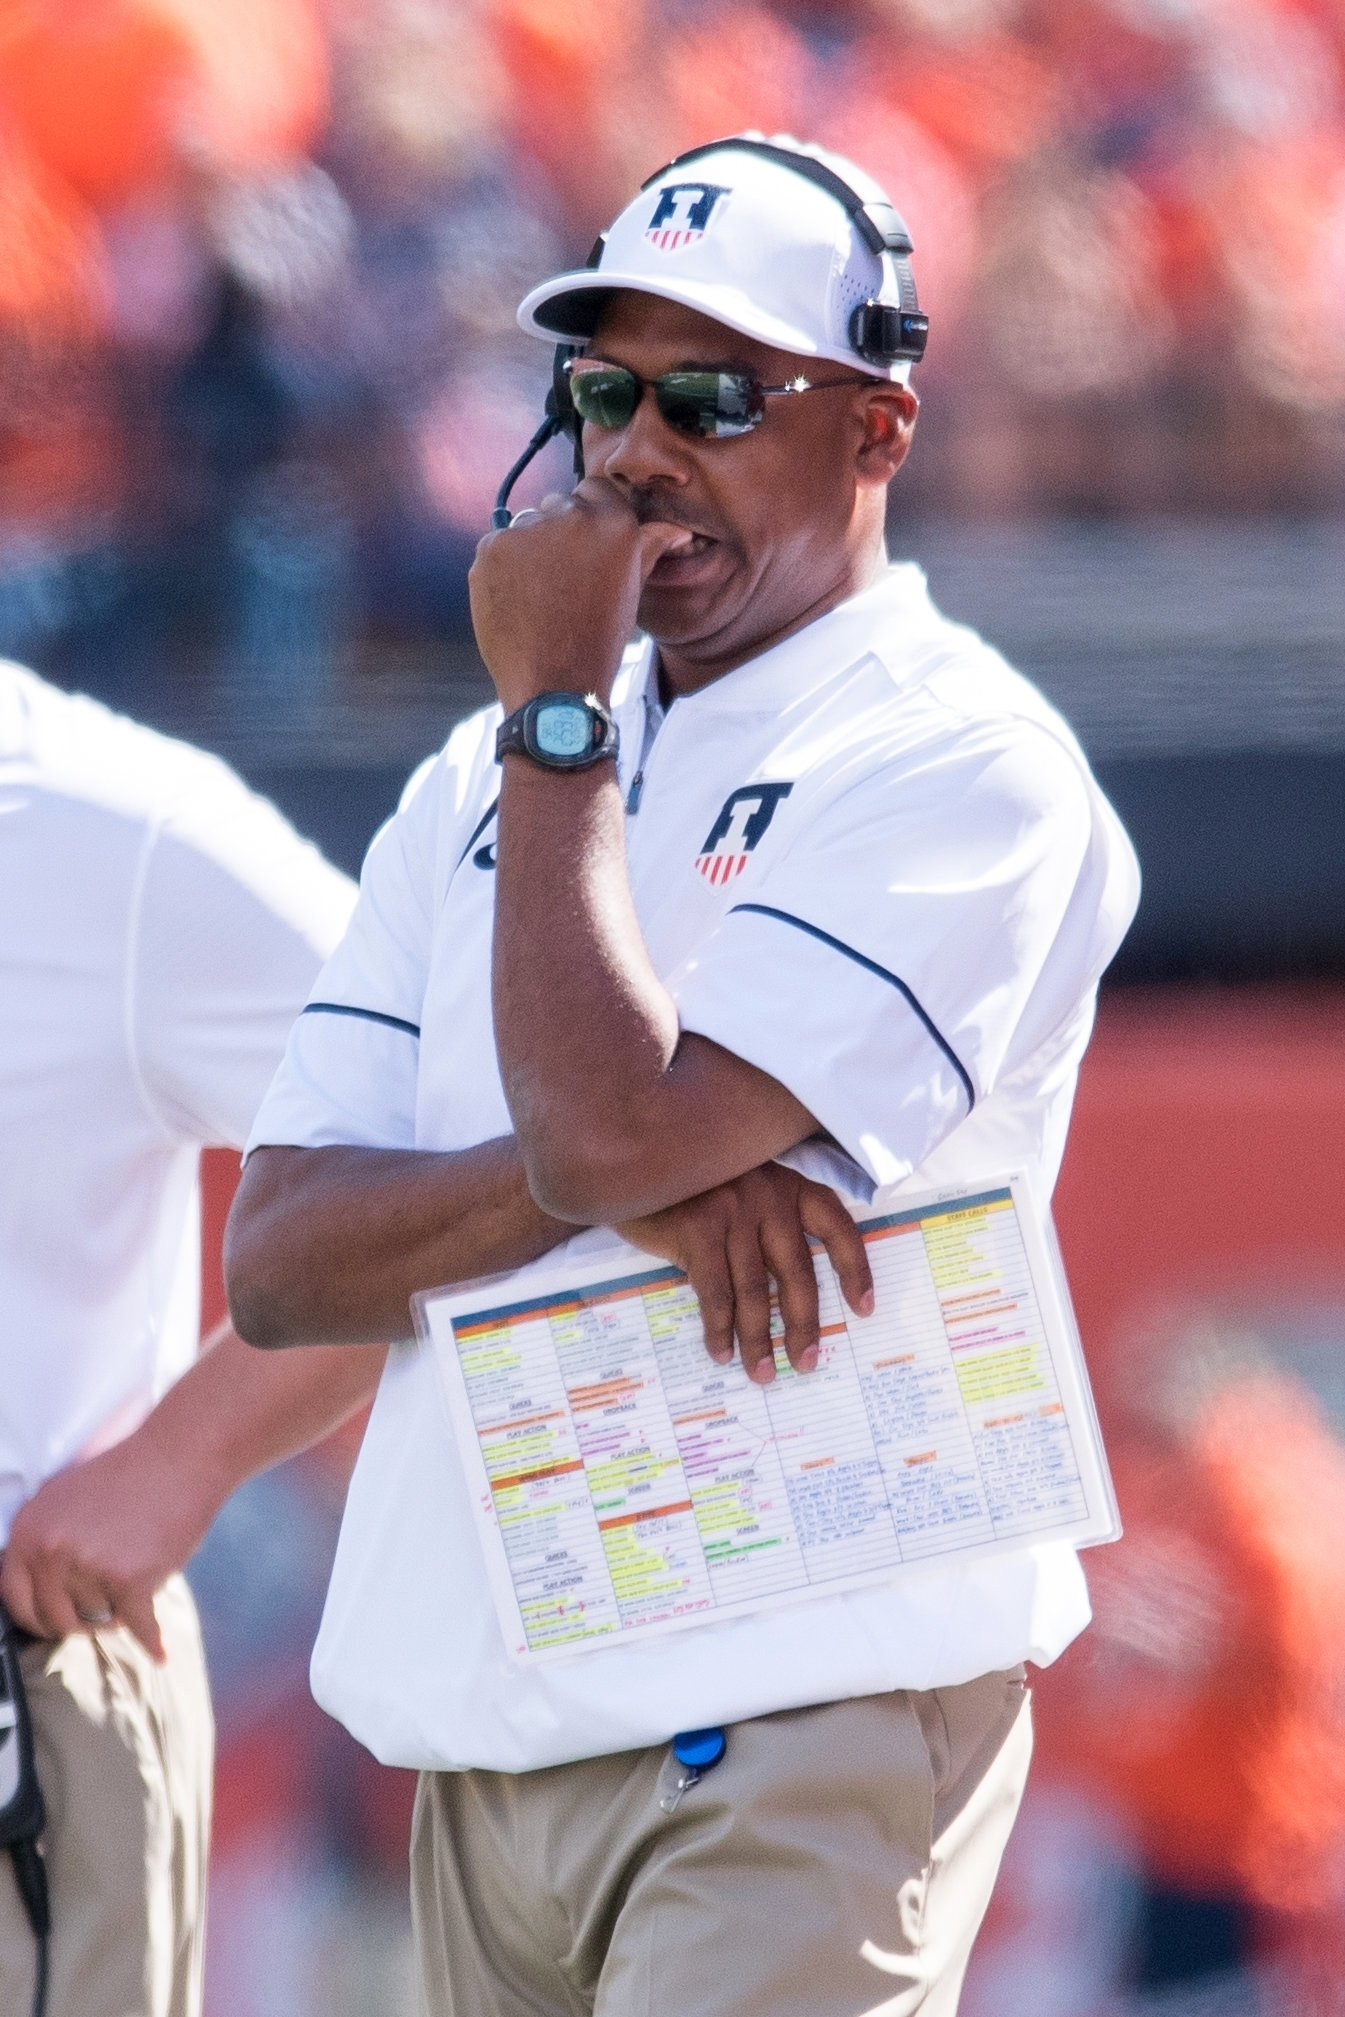 FILE - In this Sept. 3, 2016 file photo, Illinois offensive coordinator Garrick McGee stands on the sideline of an NCAA college football game against Murray State, in Champaign, Ill. The Illini take on No. 15 Nebraska on Saturday in Lincoln, Neb.(AP Photo